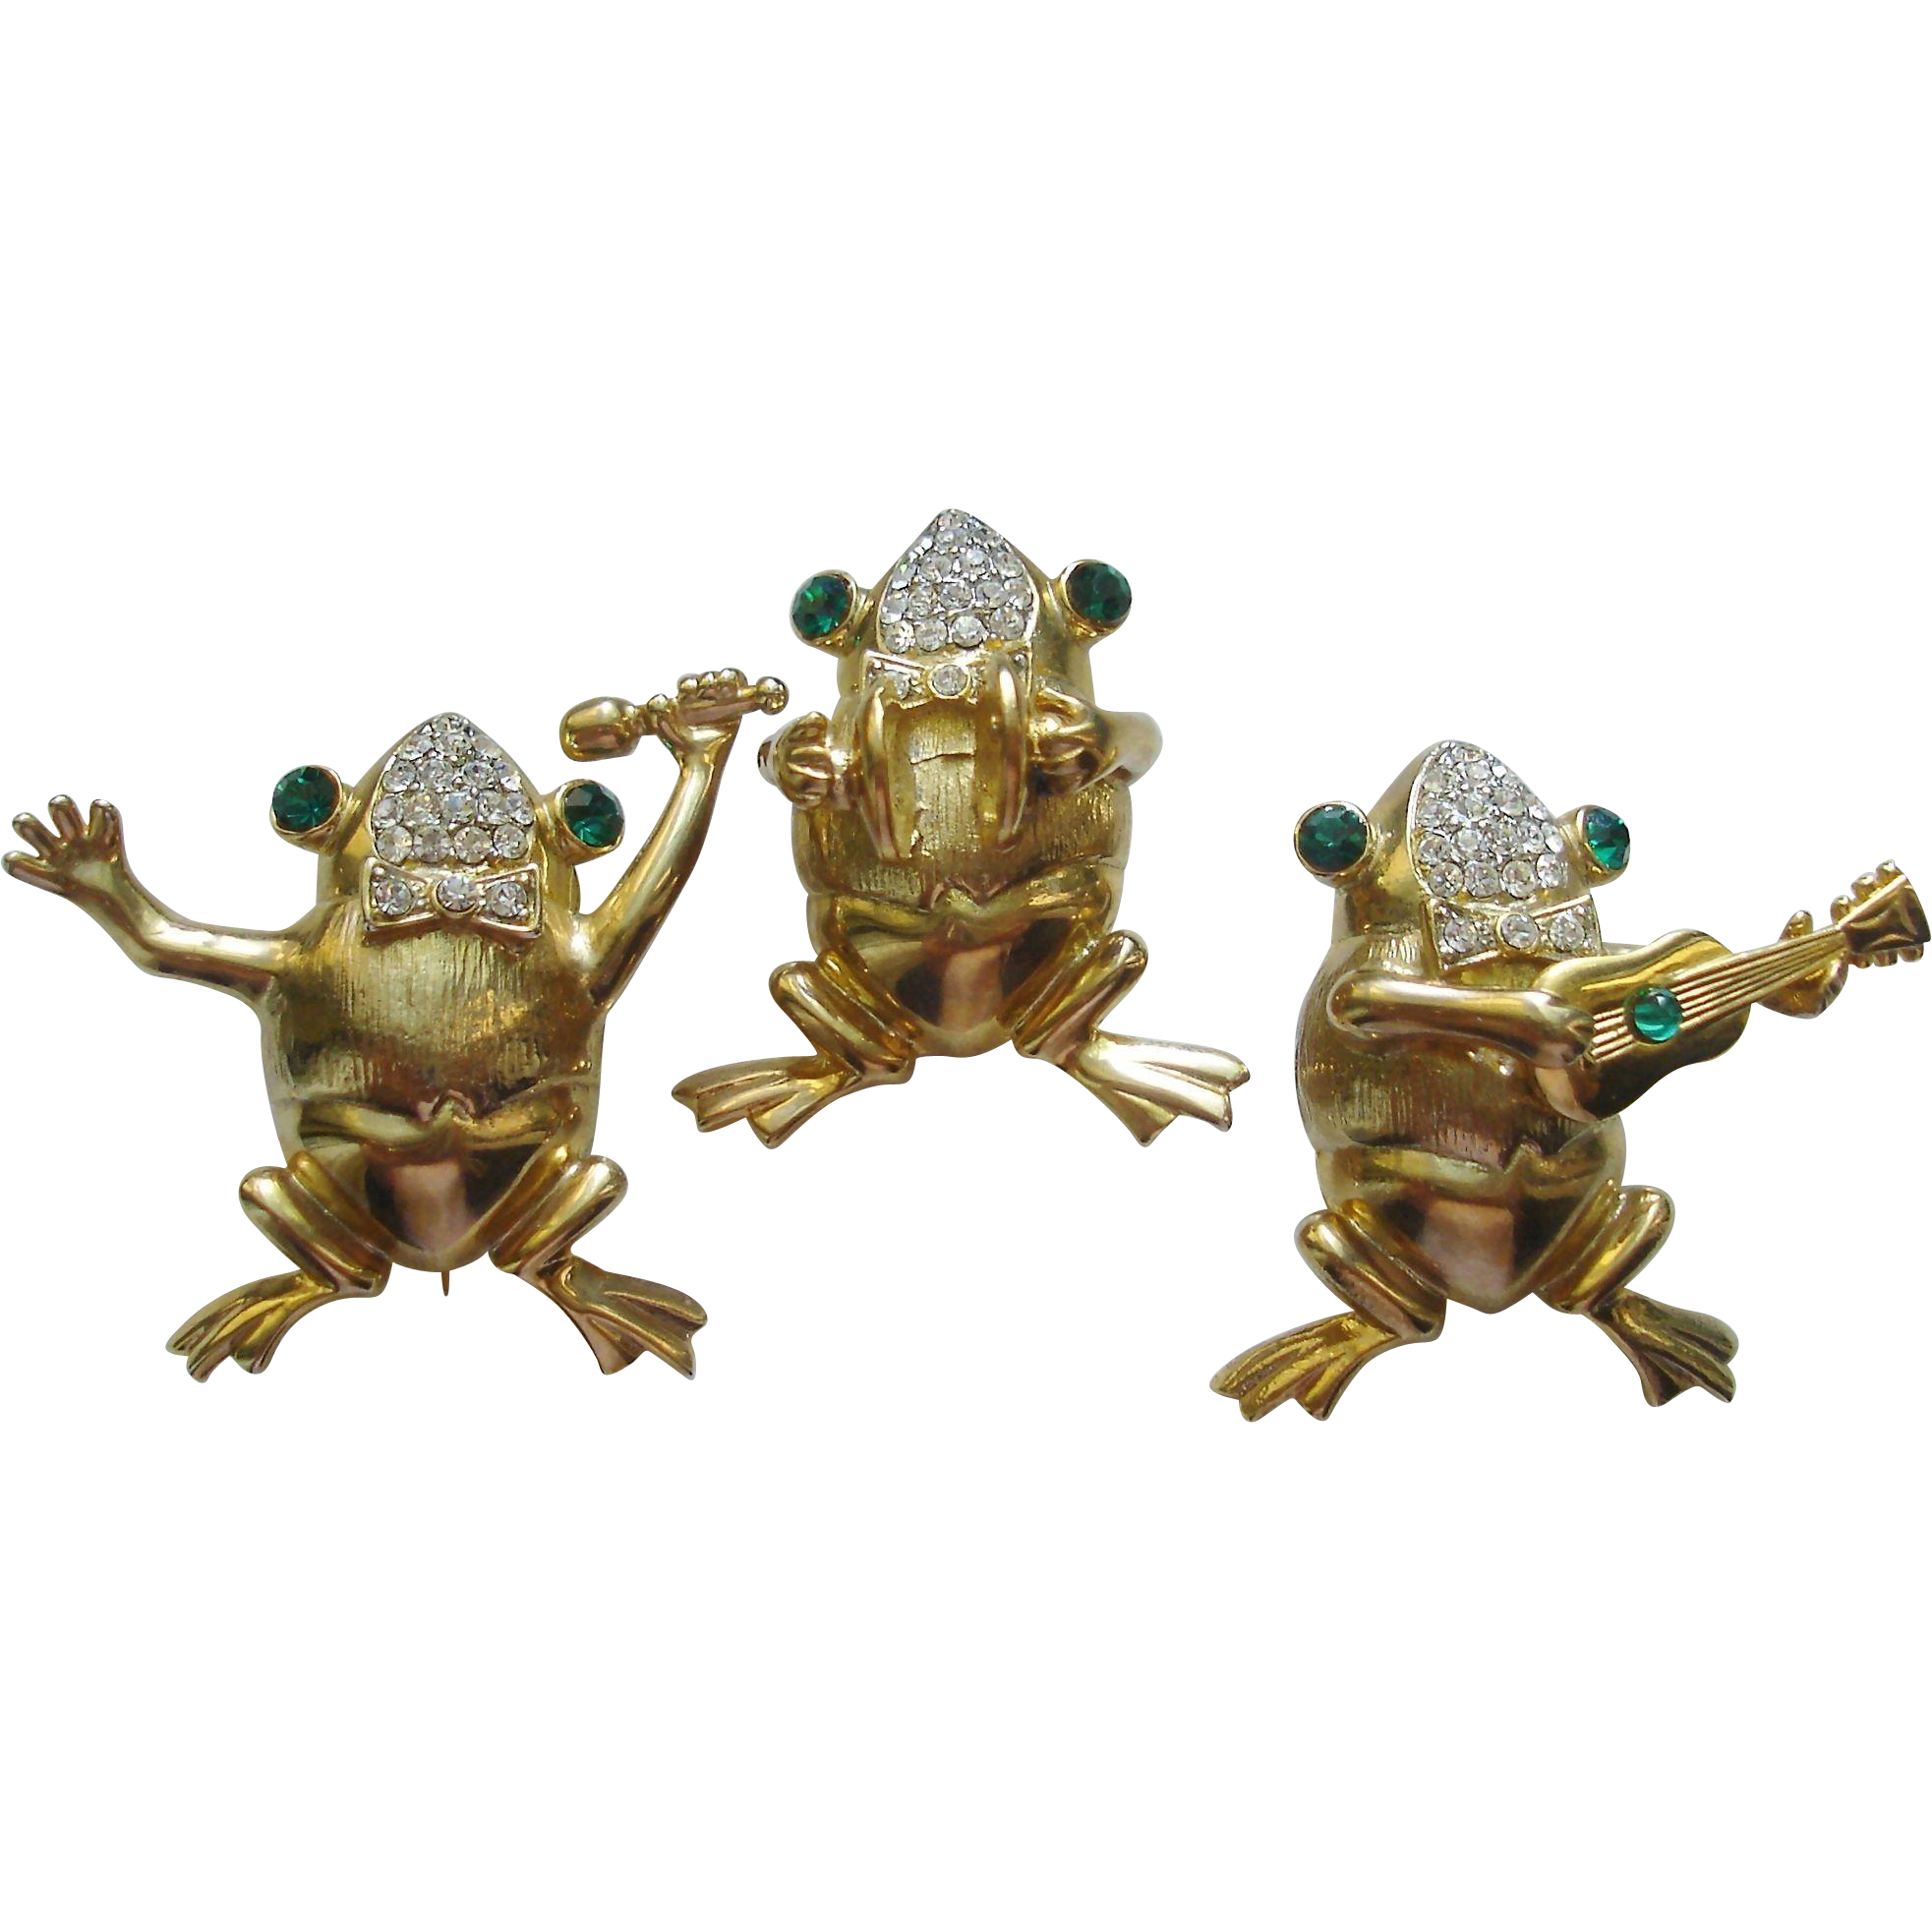 Three Vintage Frog Musician Pins, Brooches